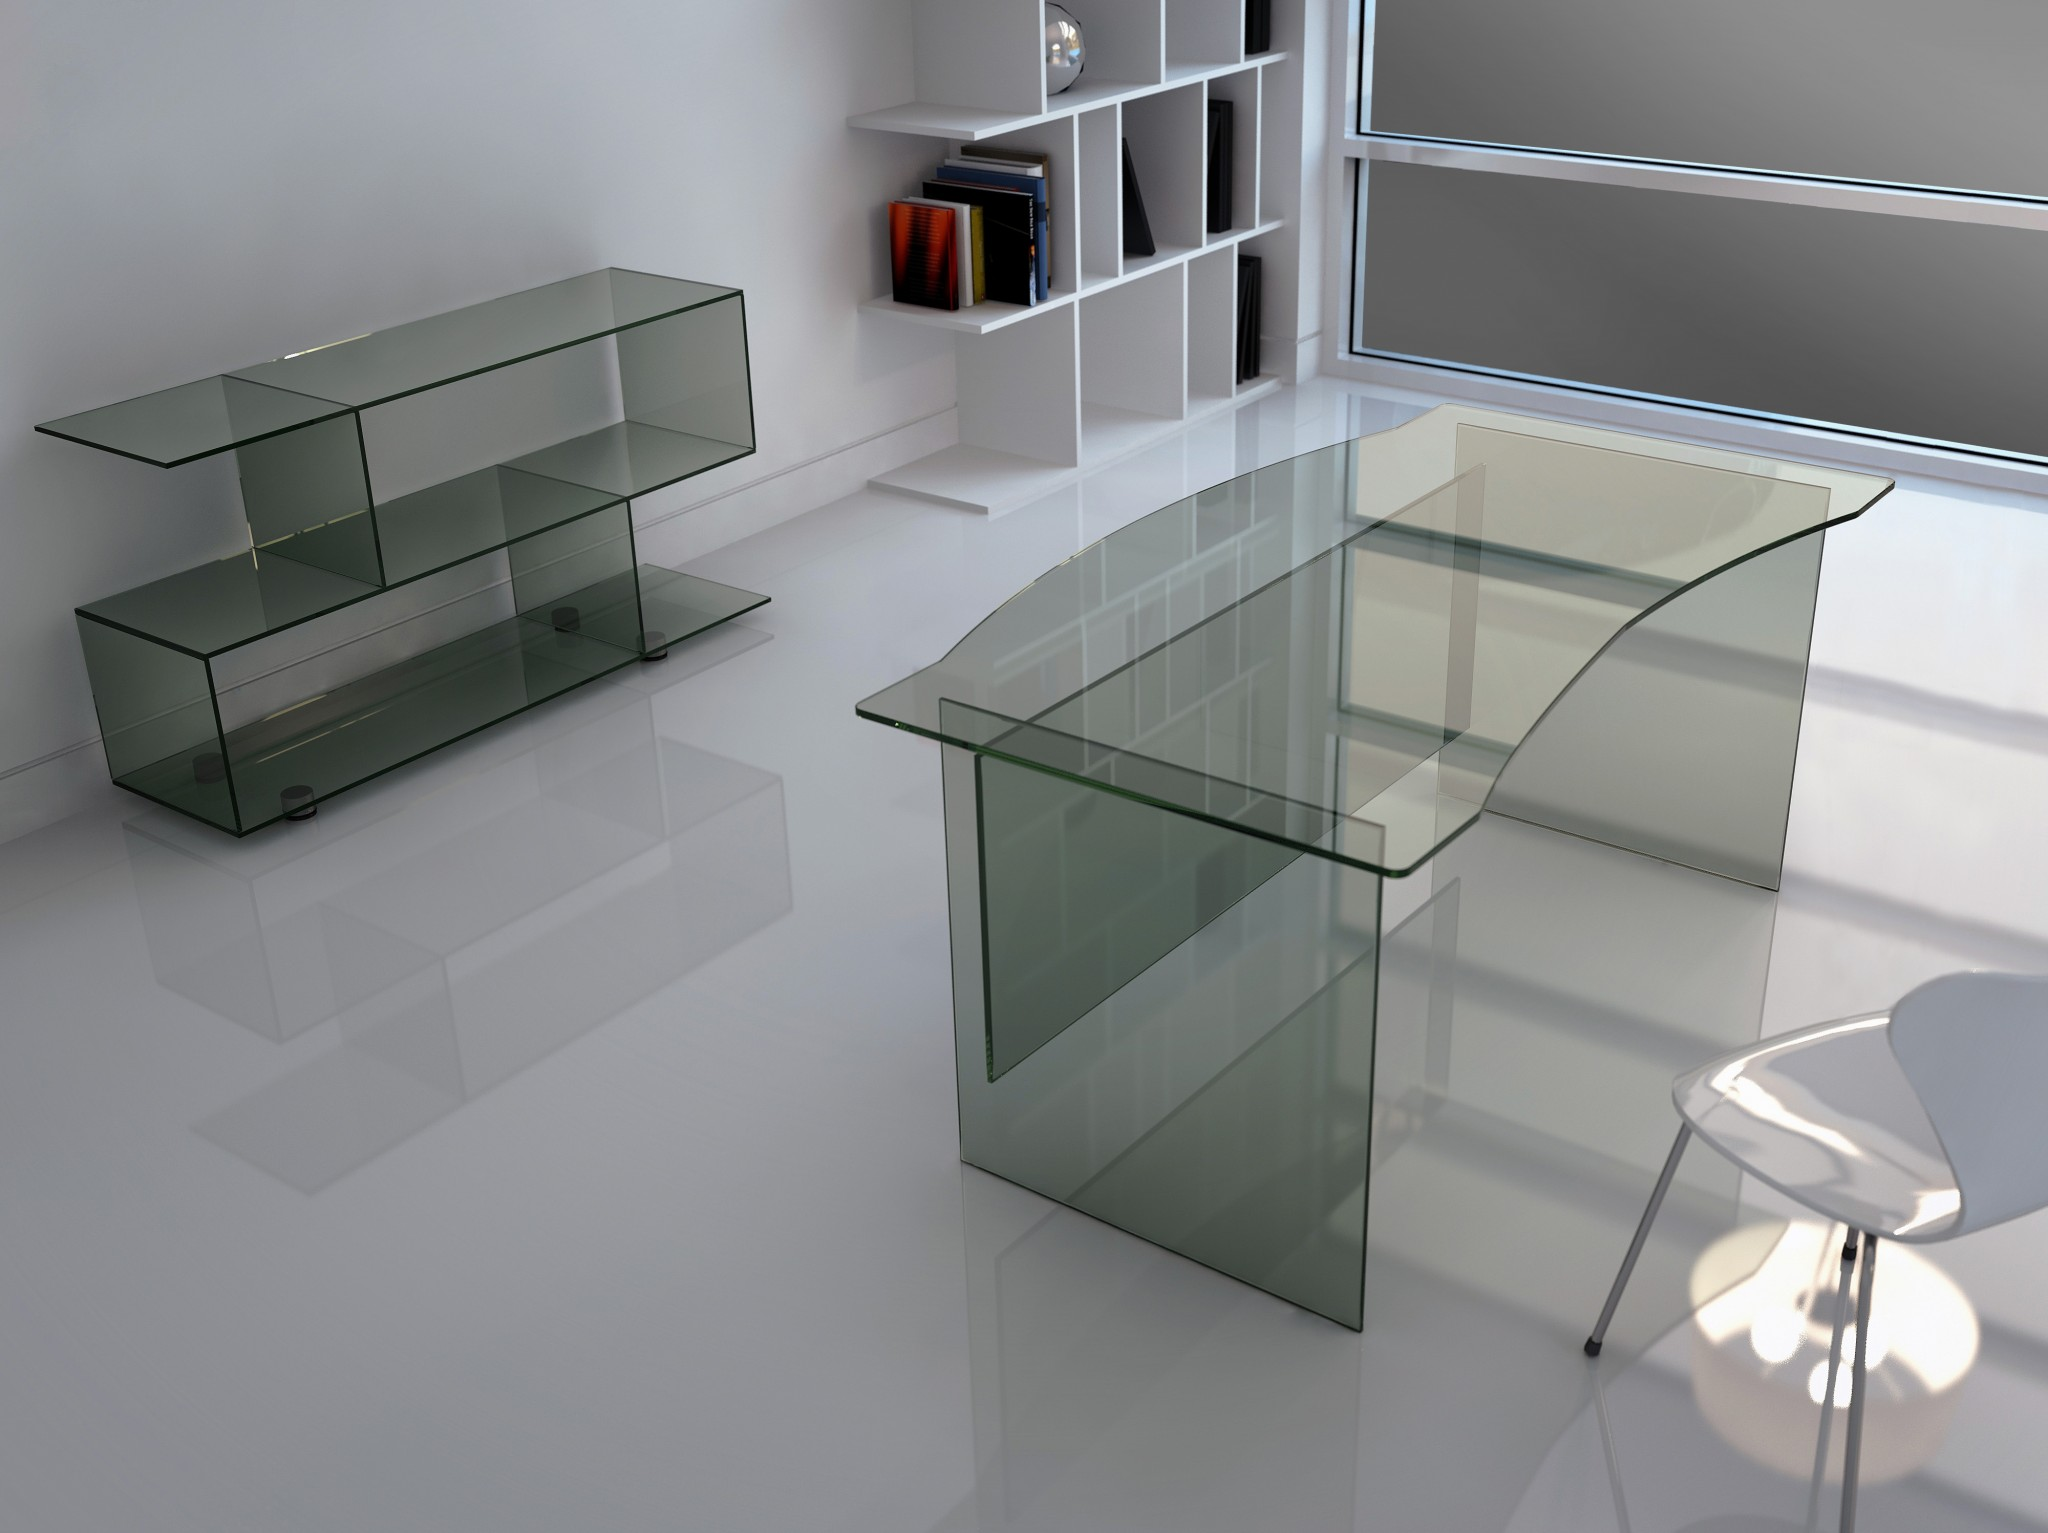 glass-furniture-reflections-roomshot